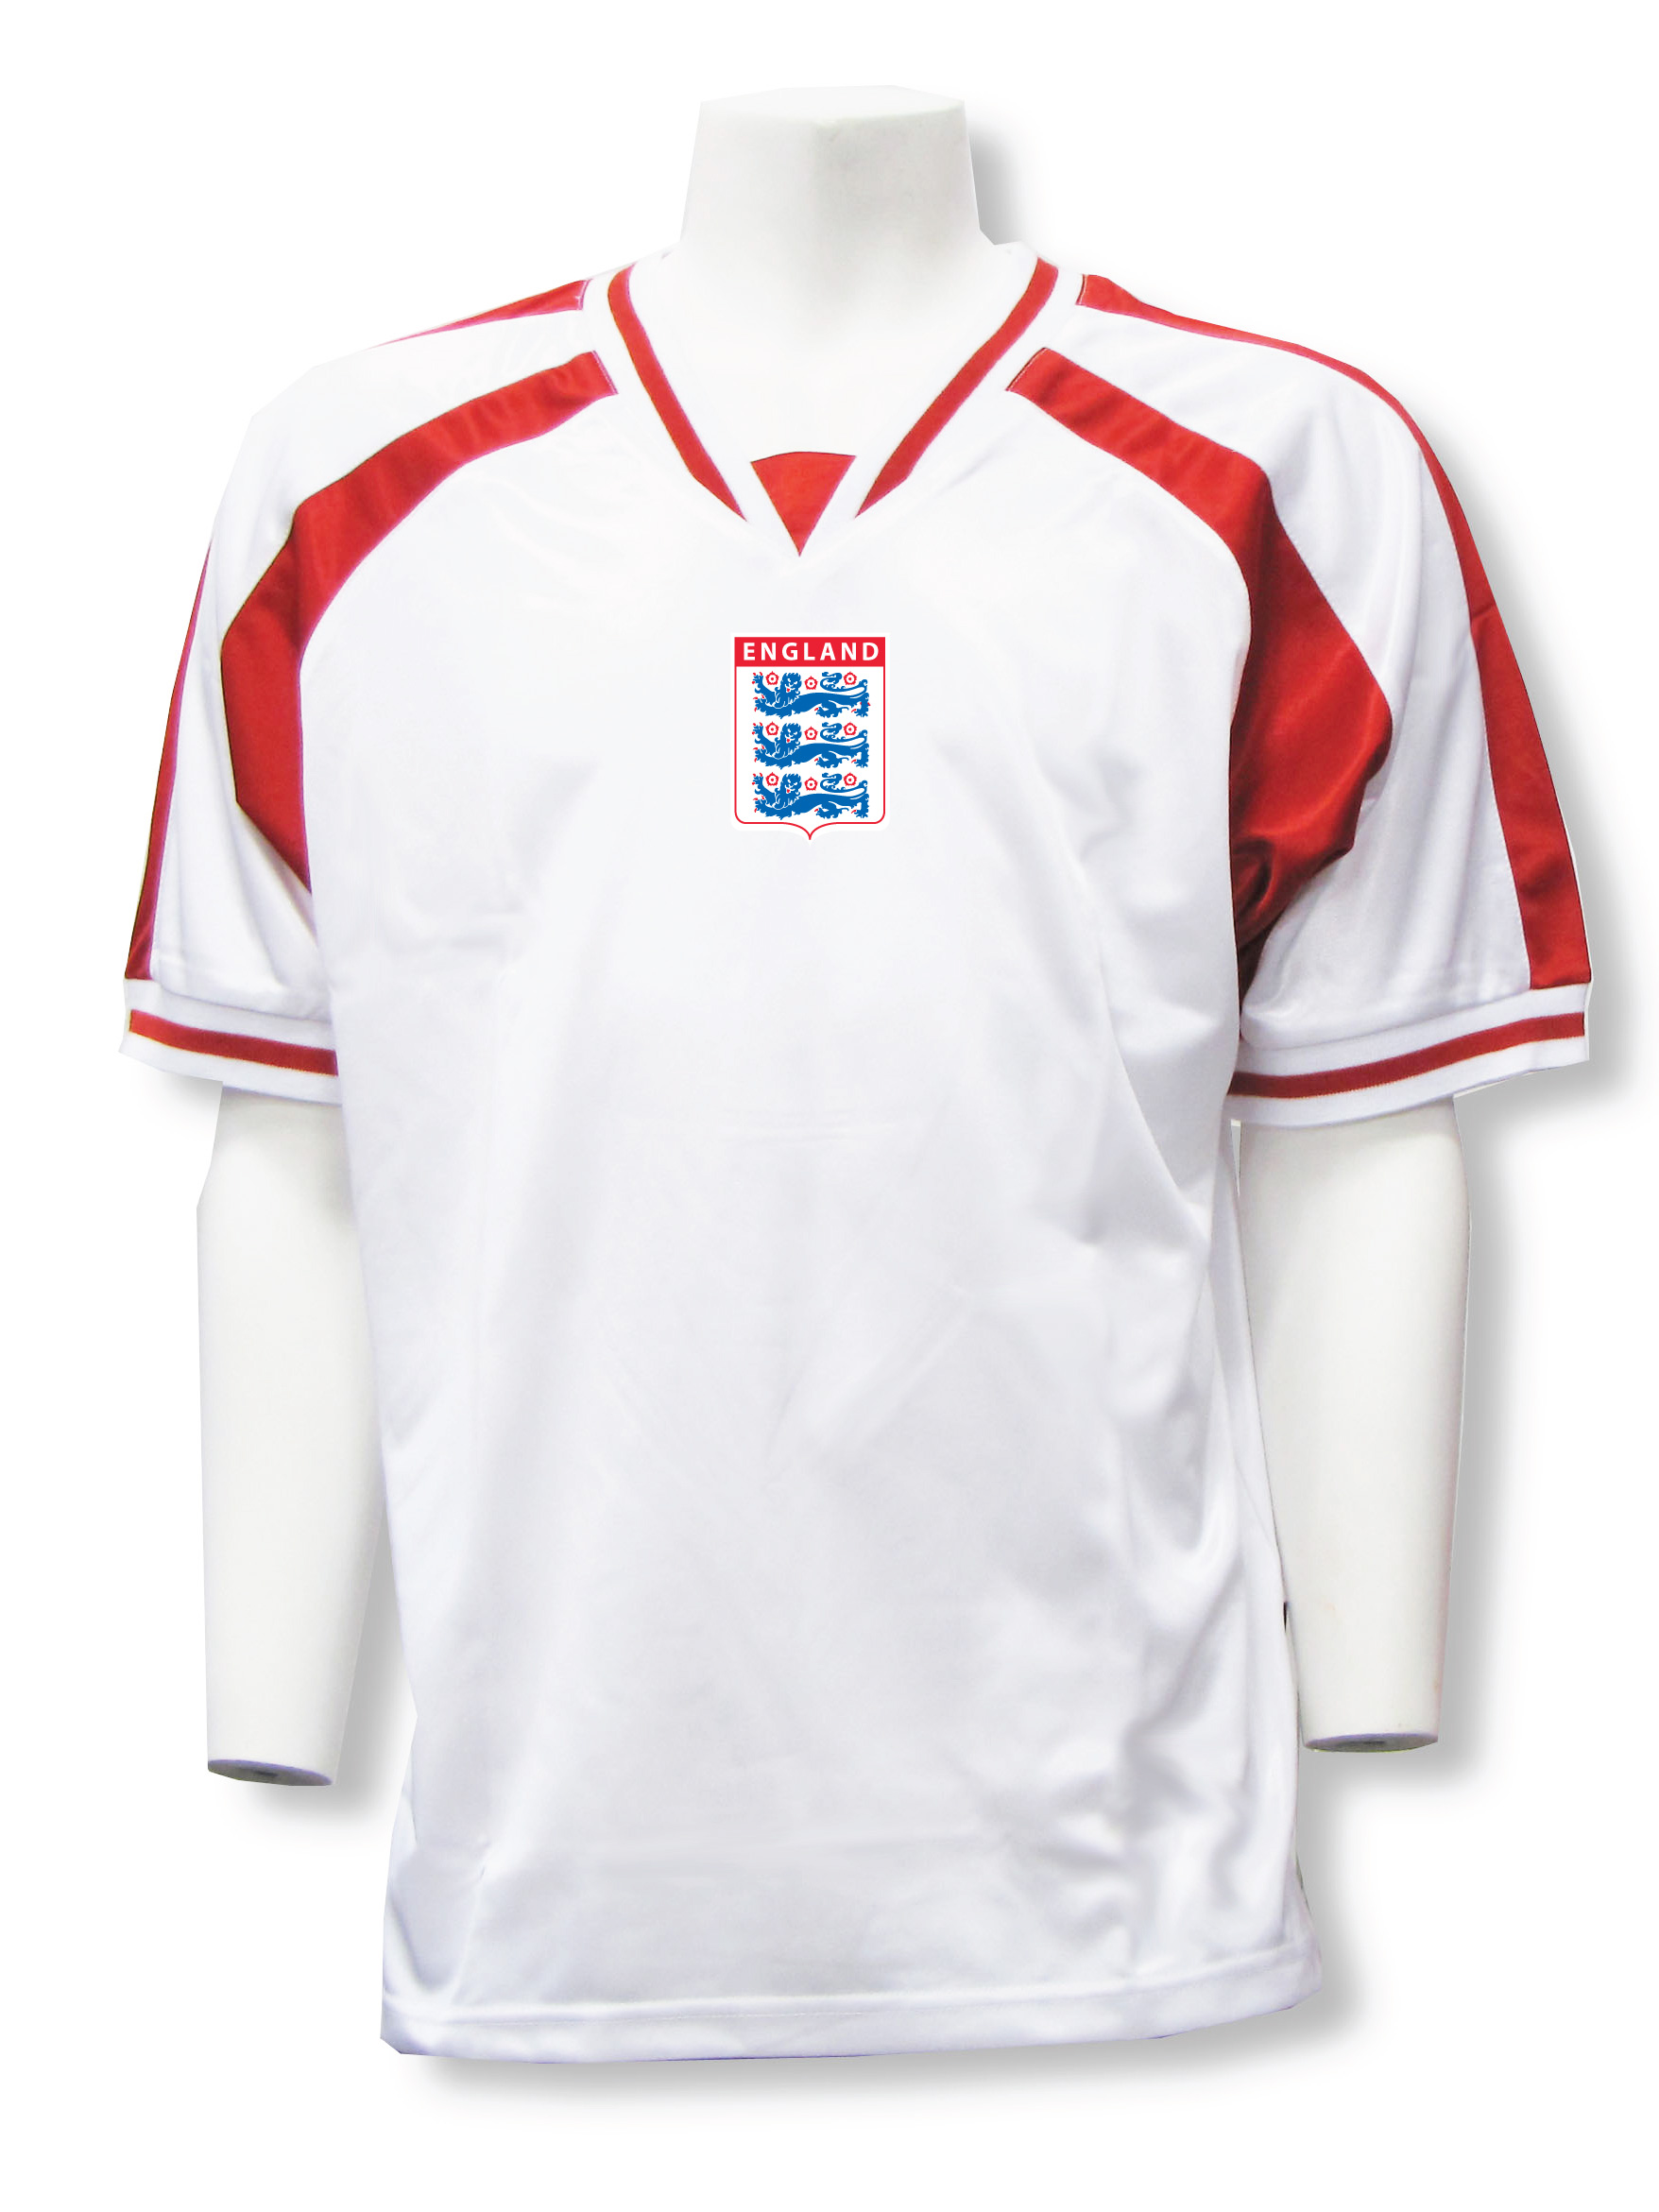 England soccer jersey in white/red Spitfire